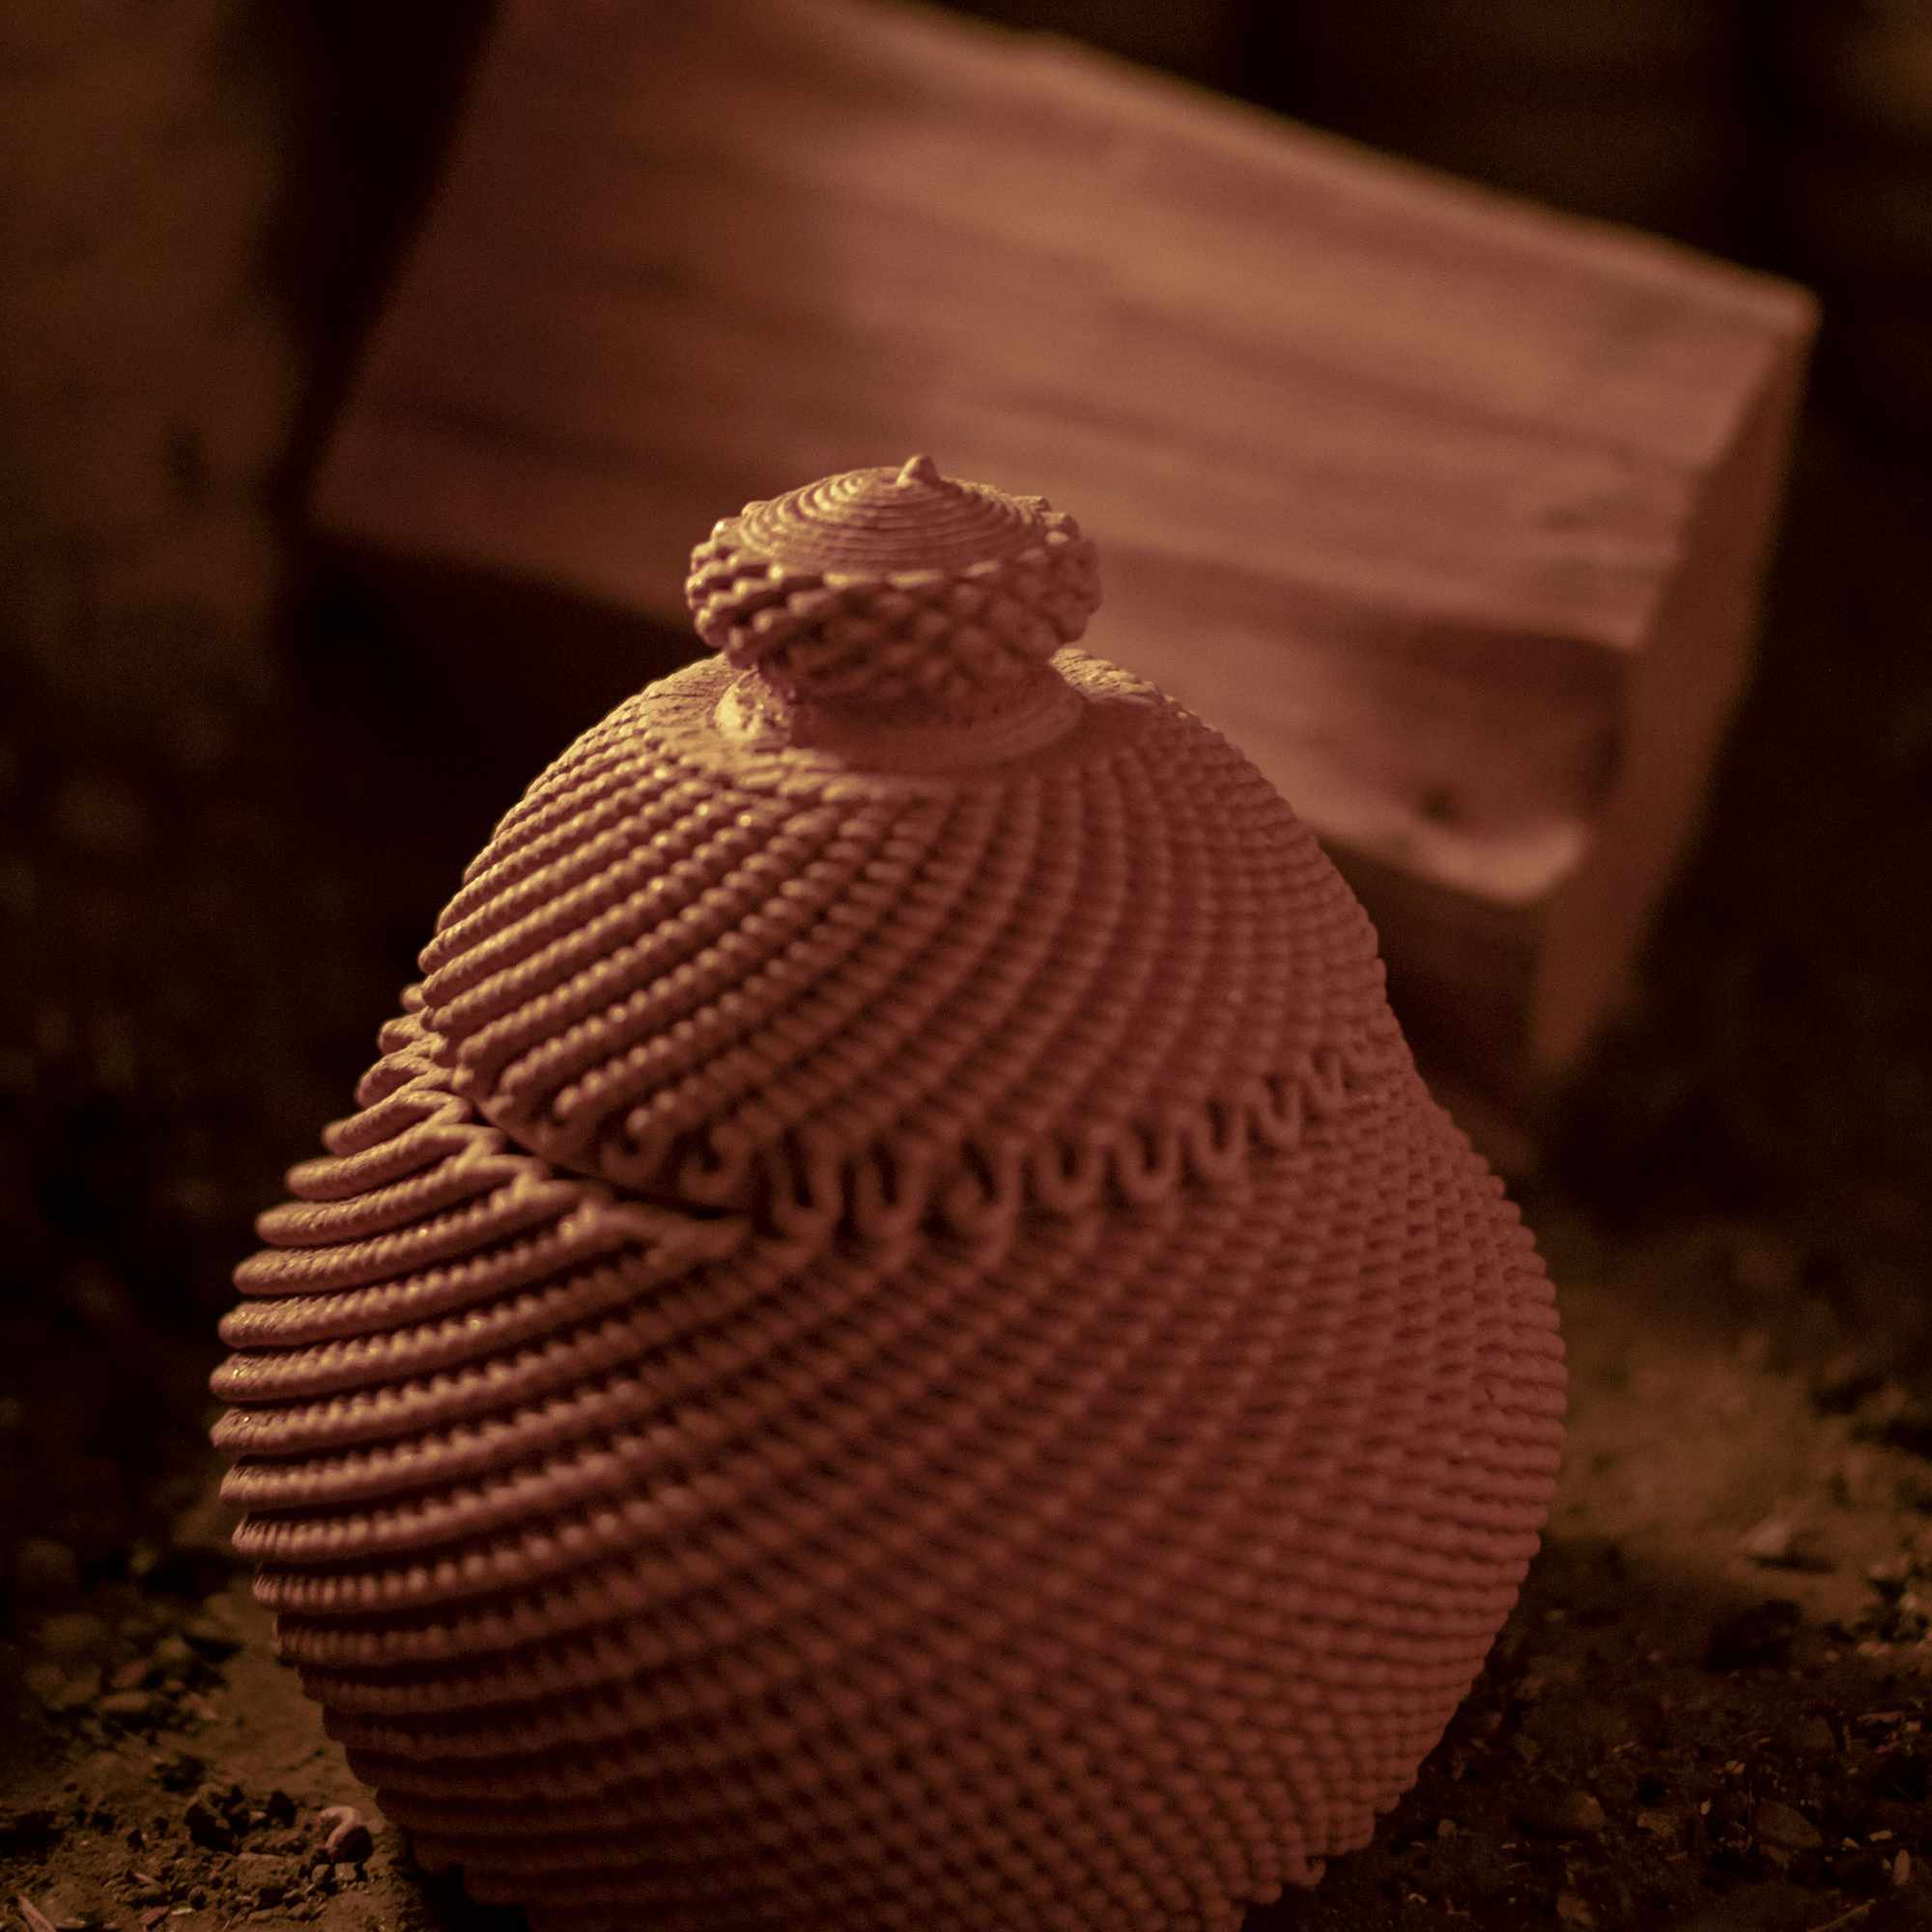 Casa Covida 3D printed adobe house by Emerging Objects 3D printed pottery